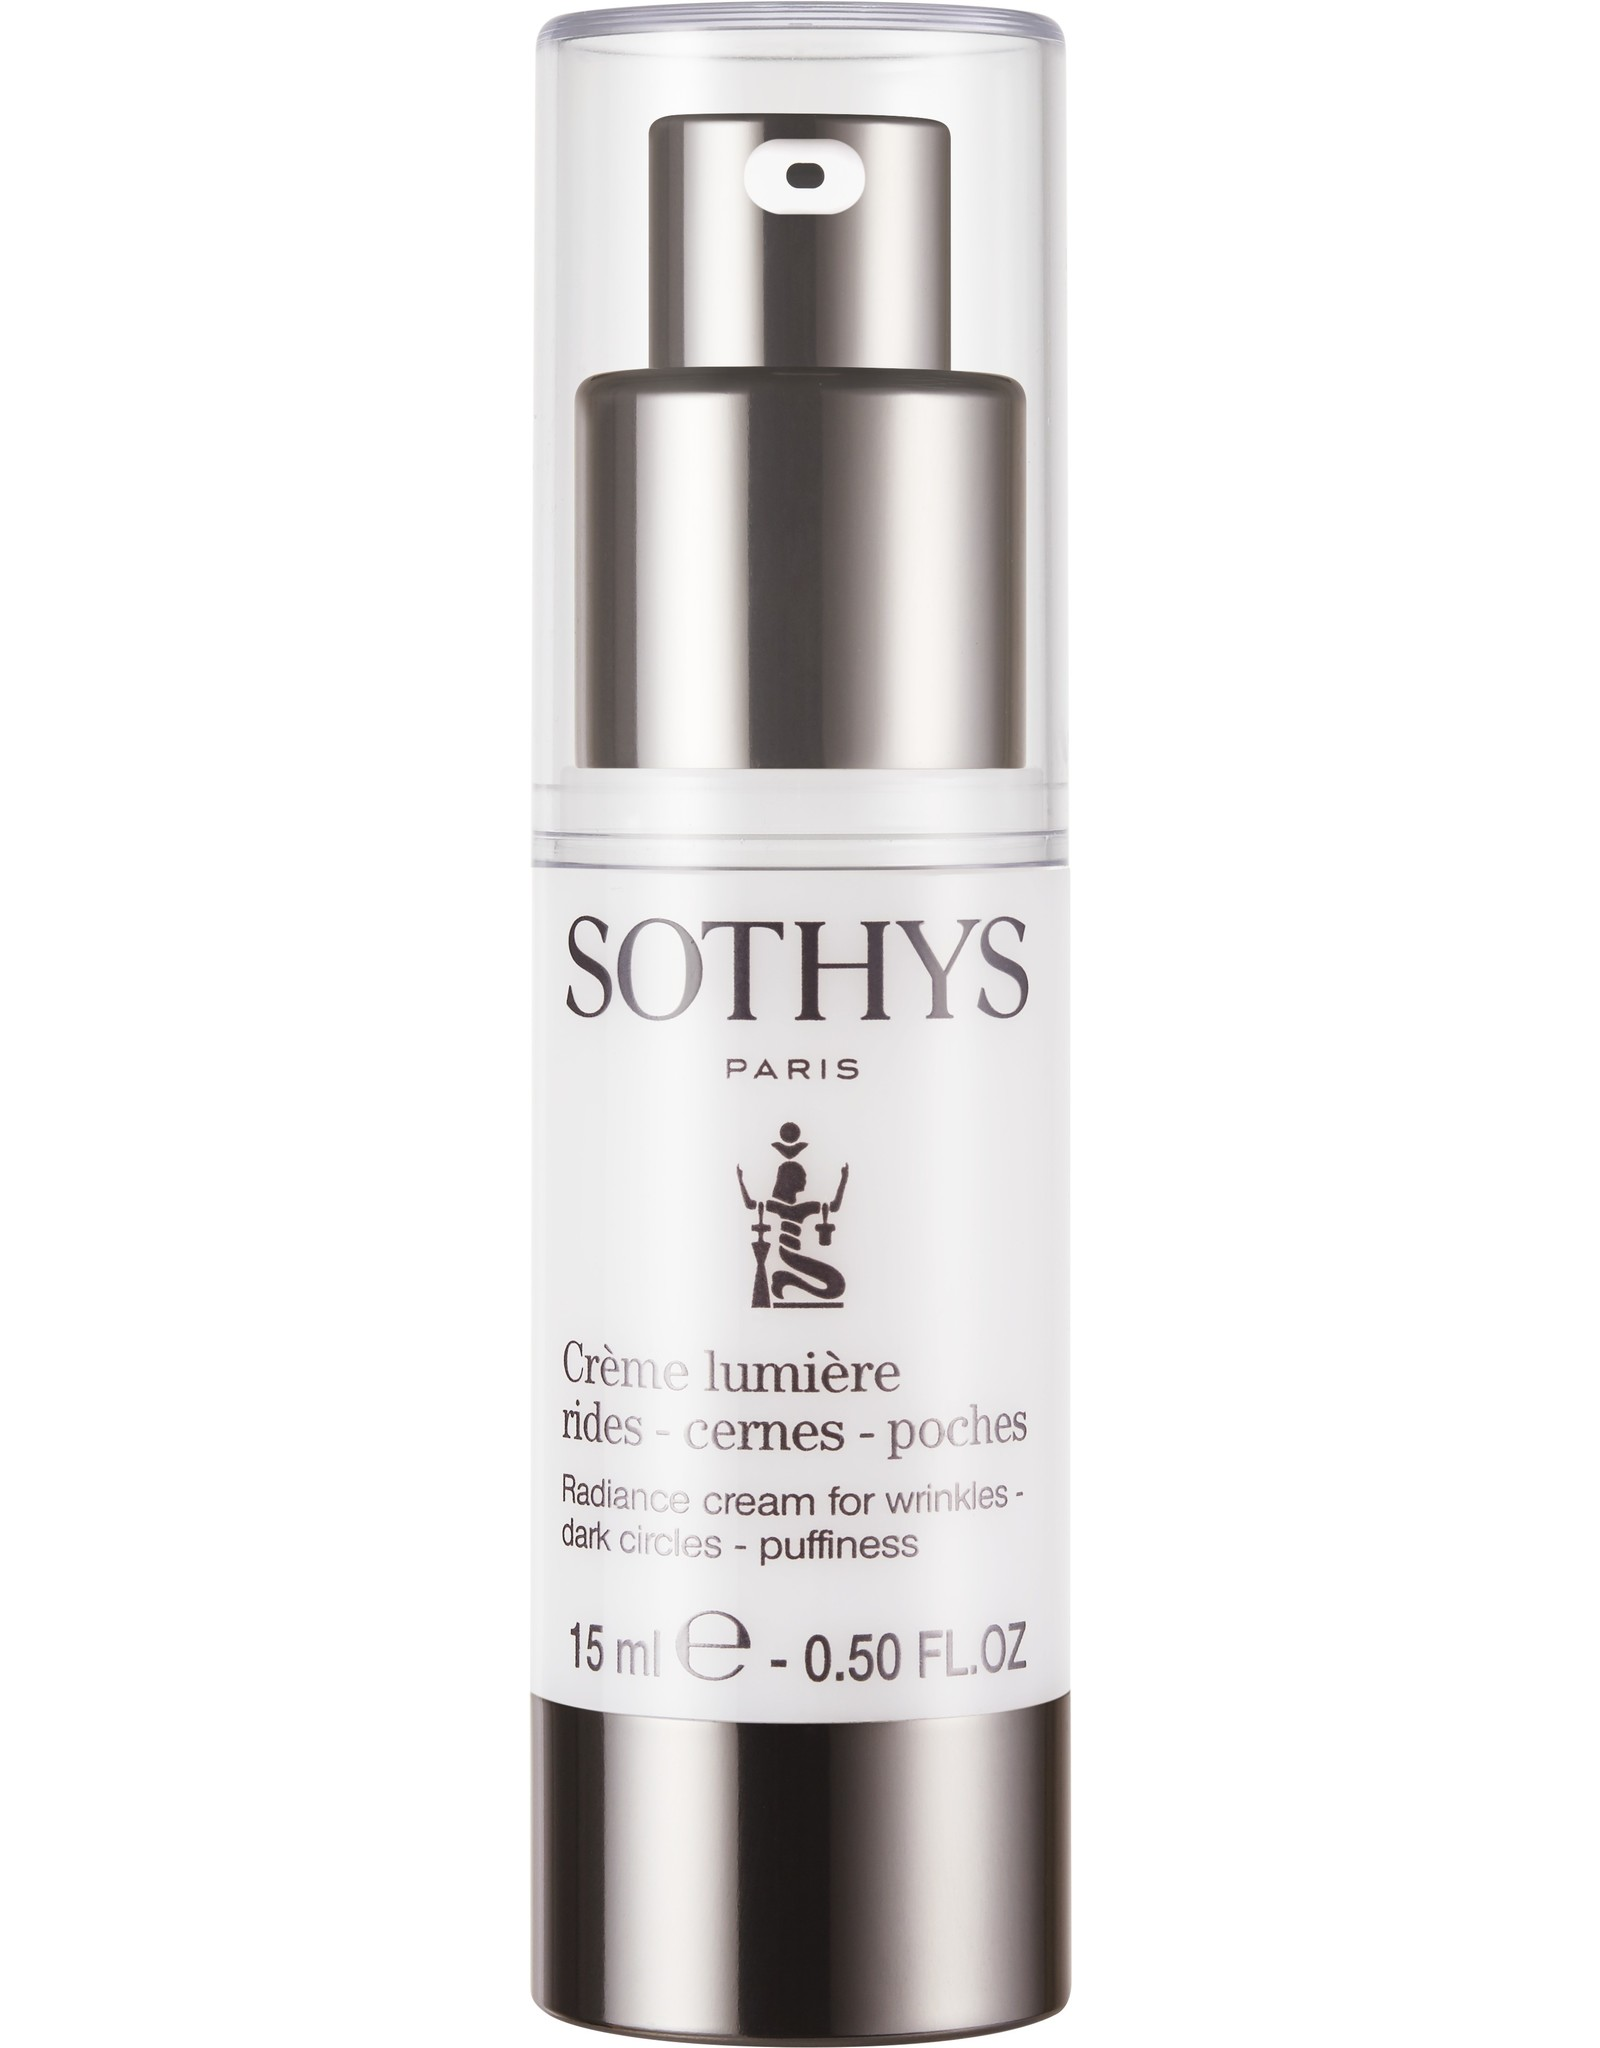 SOTHYS Radiance cream for wrinkles – dark circles - puffiness - Sothys